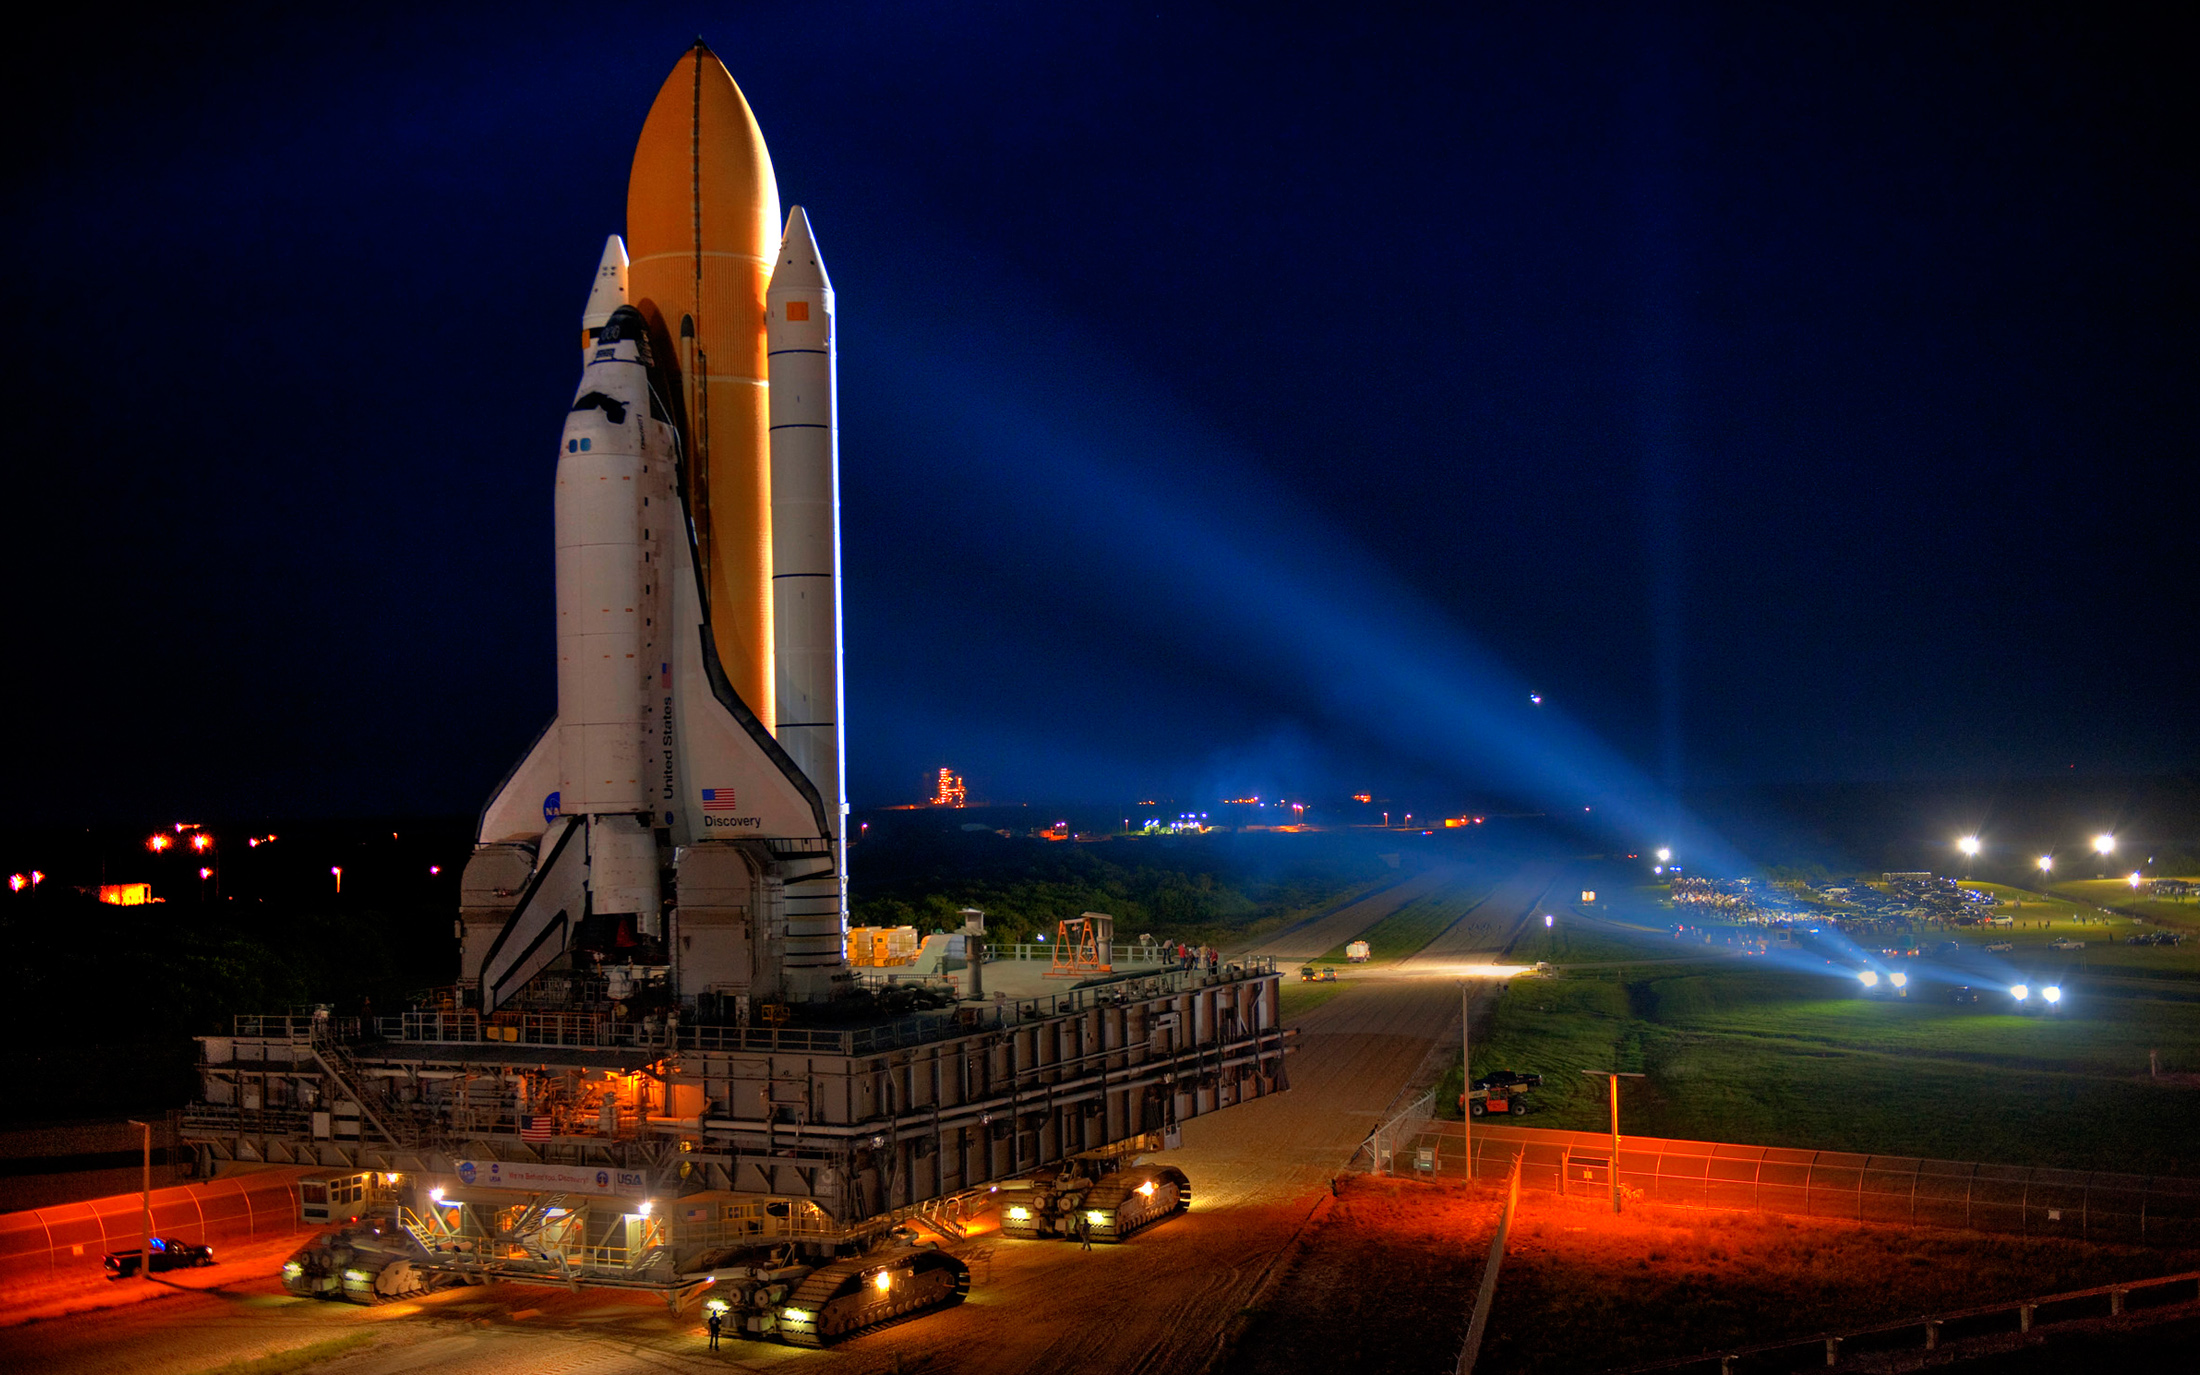 space-shuttle-hd-desktop-wallpapers-for-background-wide-free.jpg